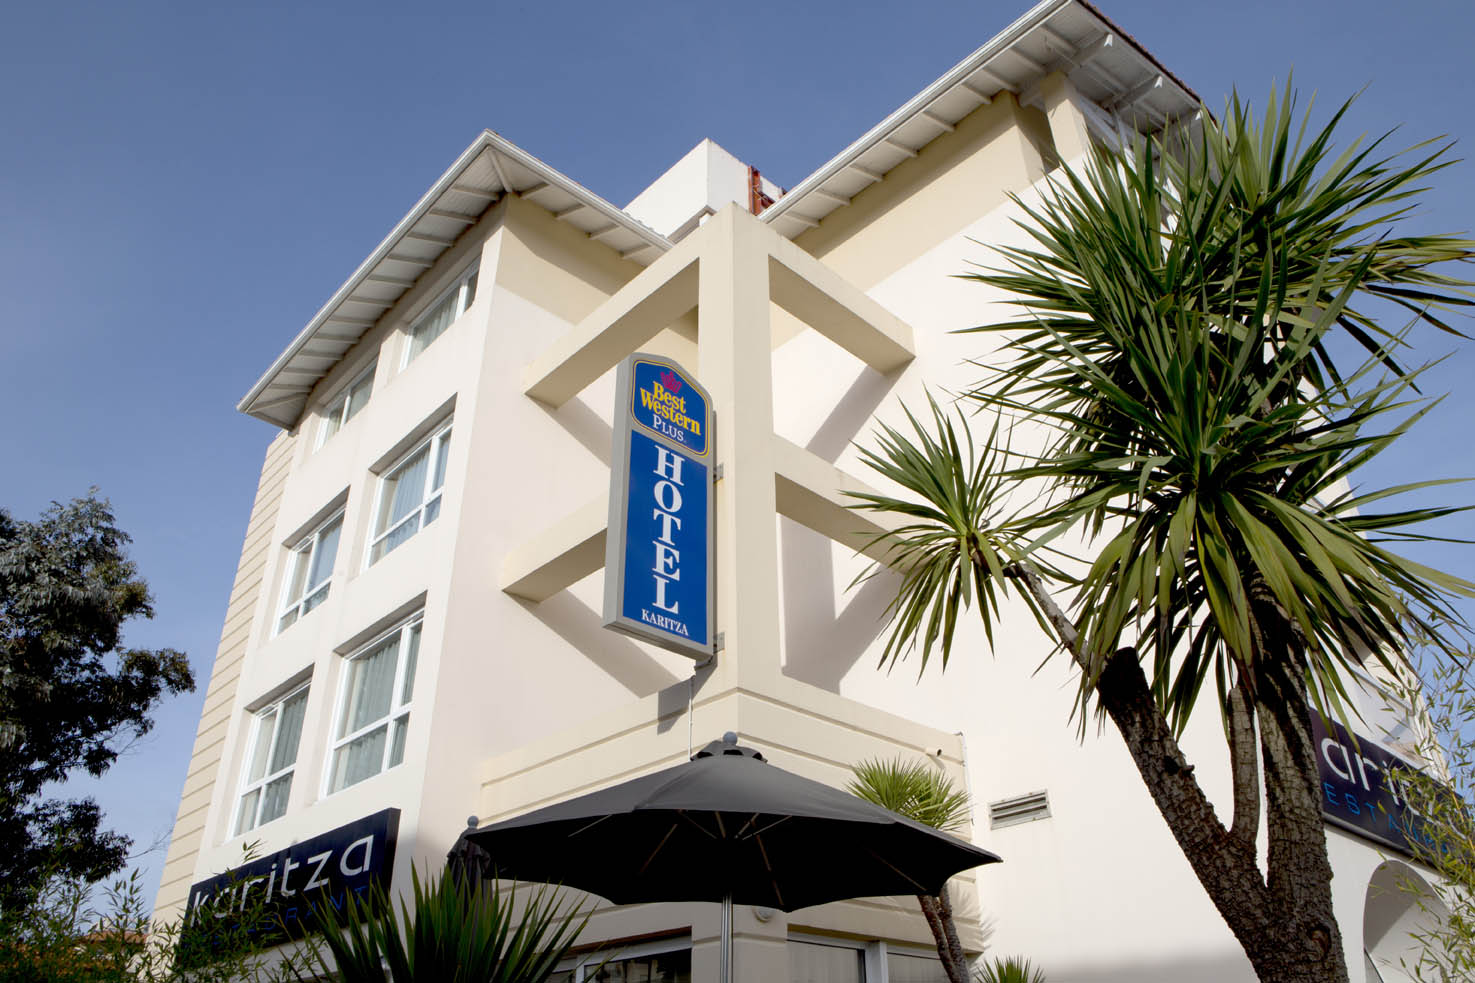 Best Western Plus Karitza Biarritz France